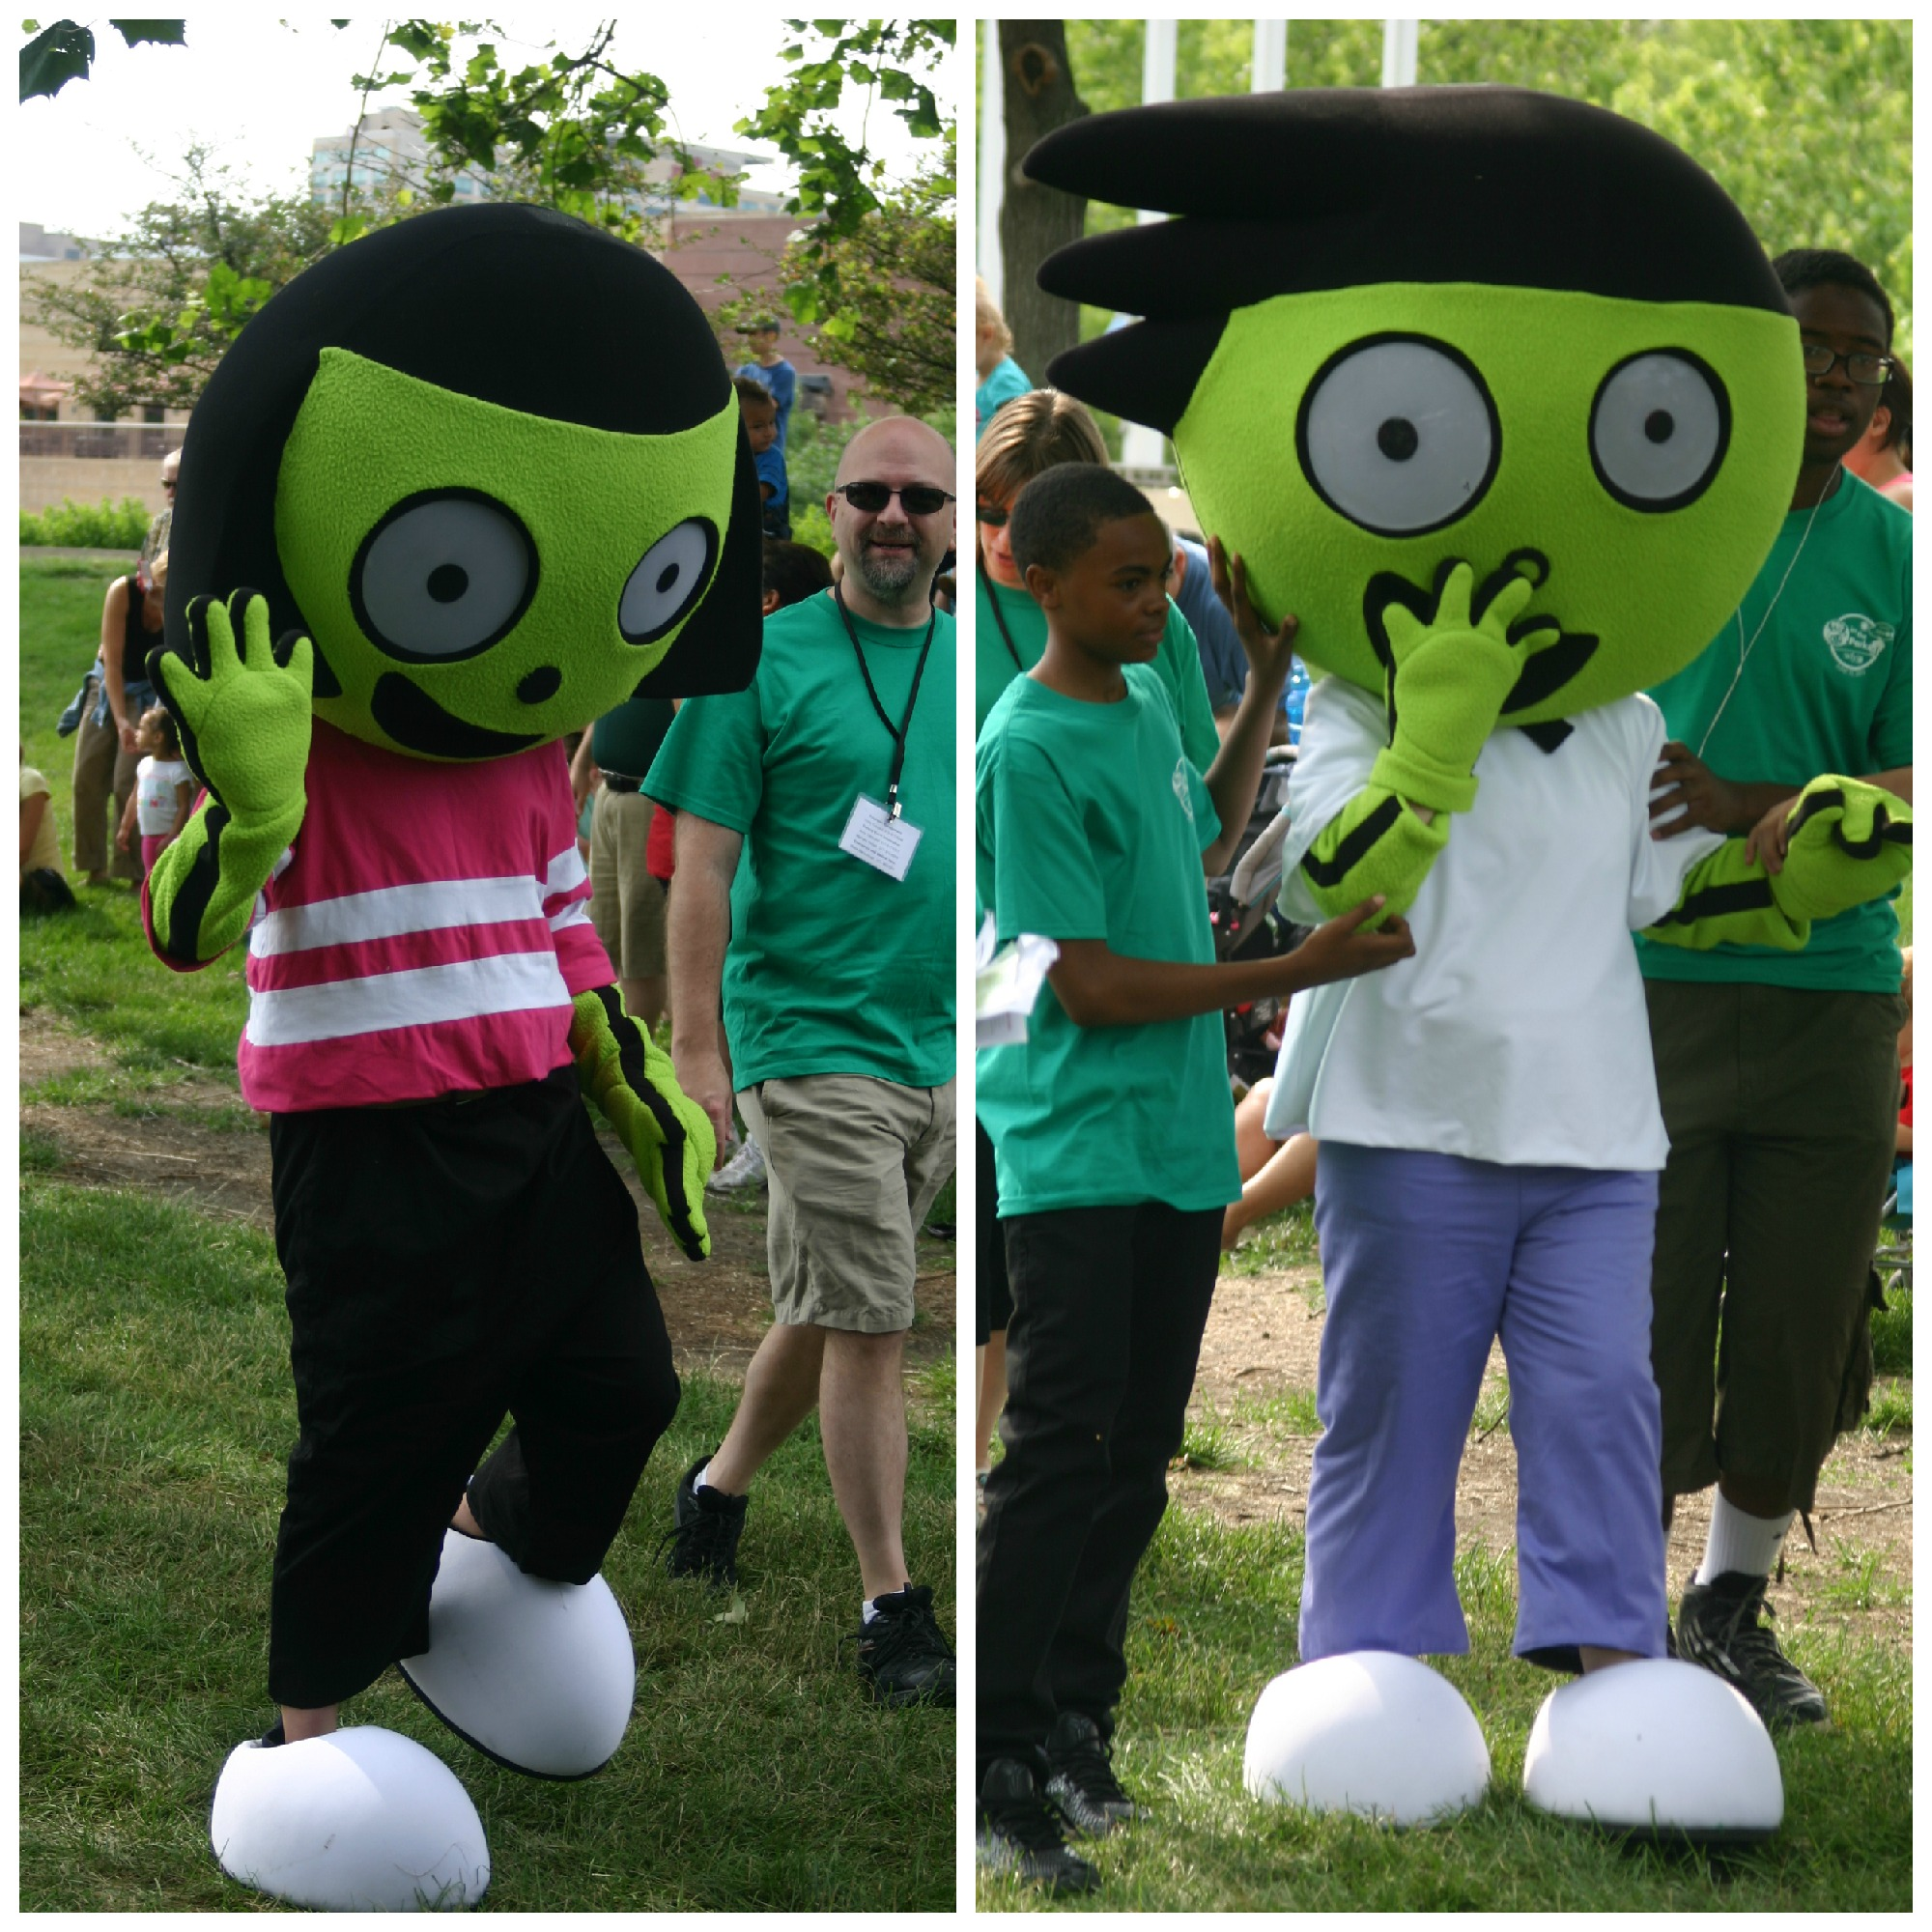 Pbs Kids In The Park Indianapolis